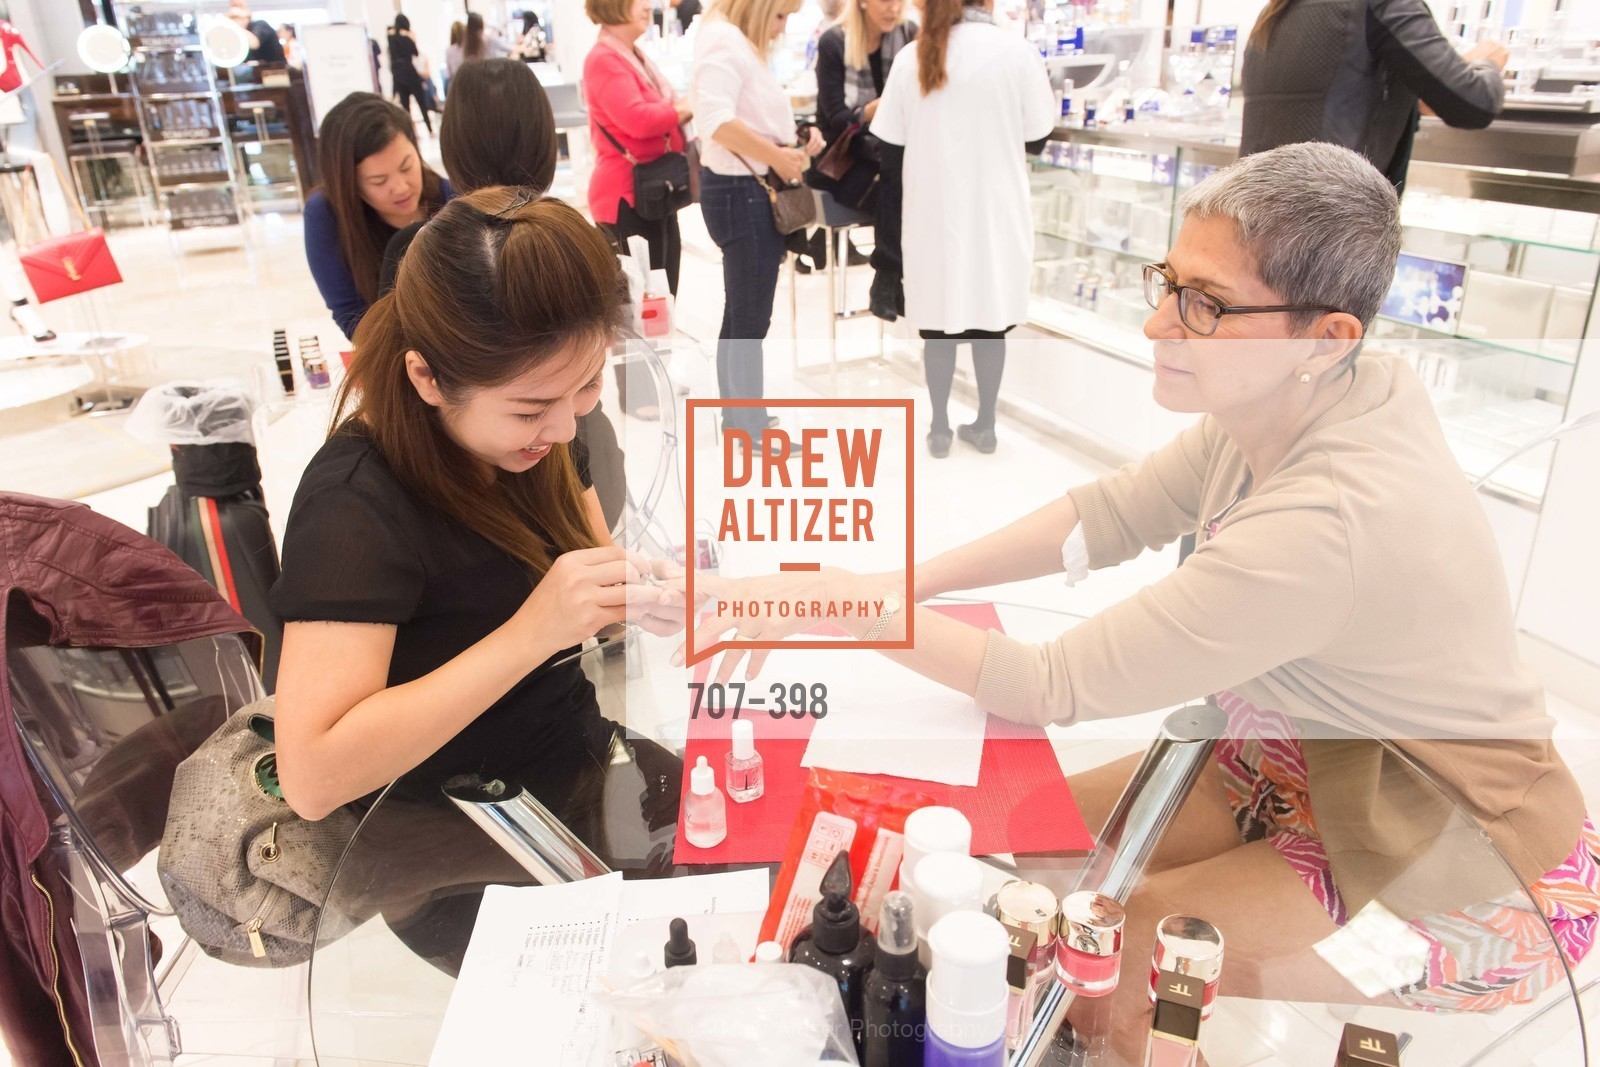 Louie Nguyen, Alice Johnson, Project Beauty at Neiman Marcus Palo Alto, Neiman Marcus, October 16th, 2015,Drew Altizer, Drew Altizer Photography, full-service agency, private events, San Francisco photographer, photographer california